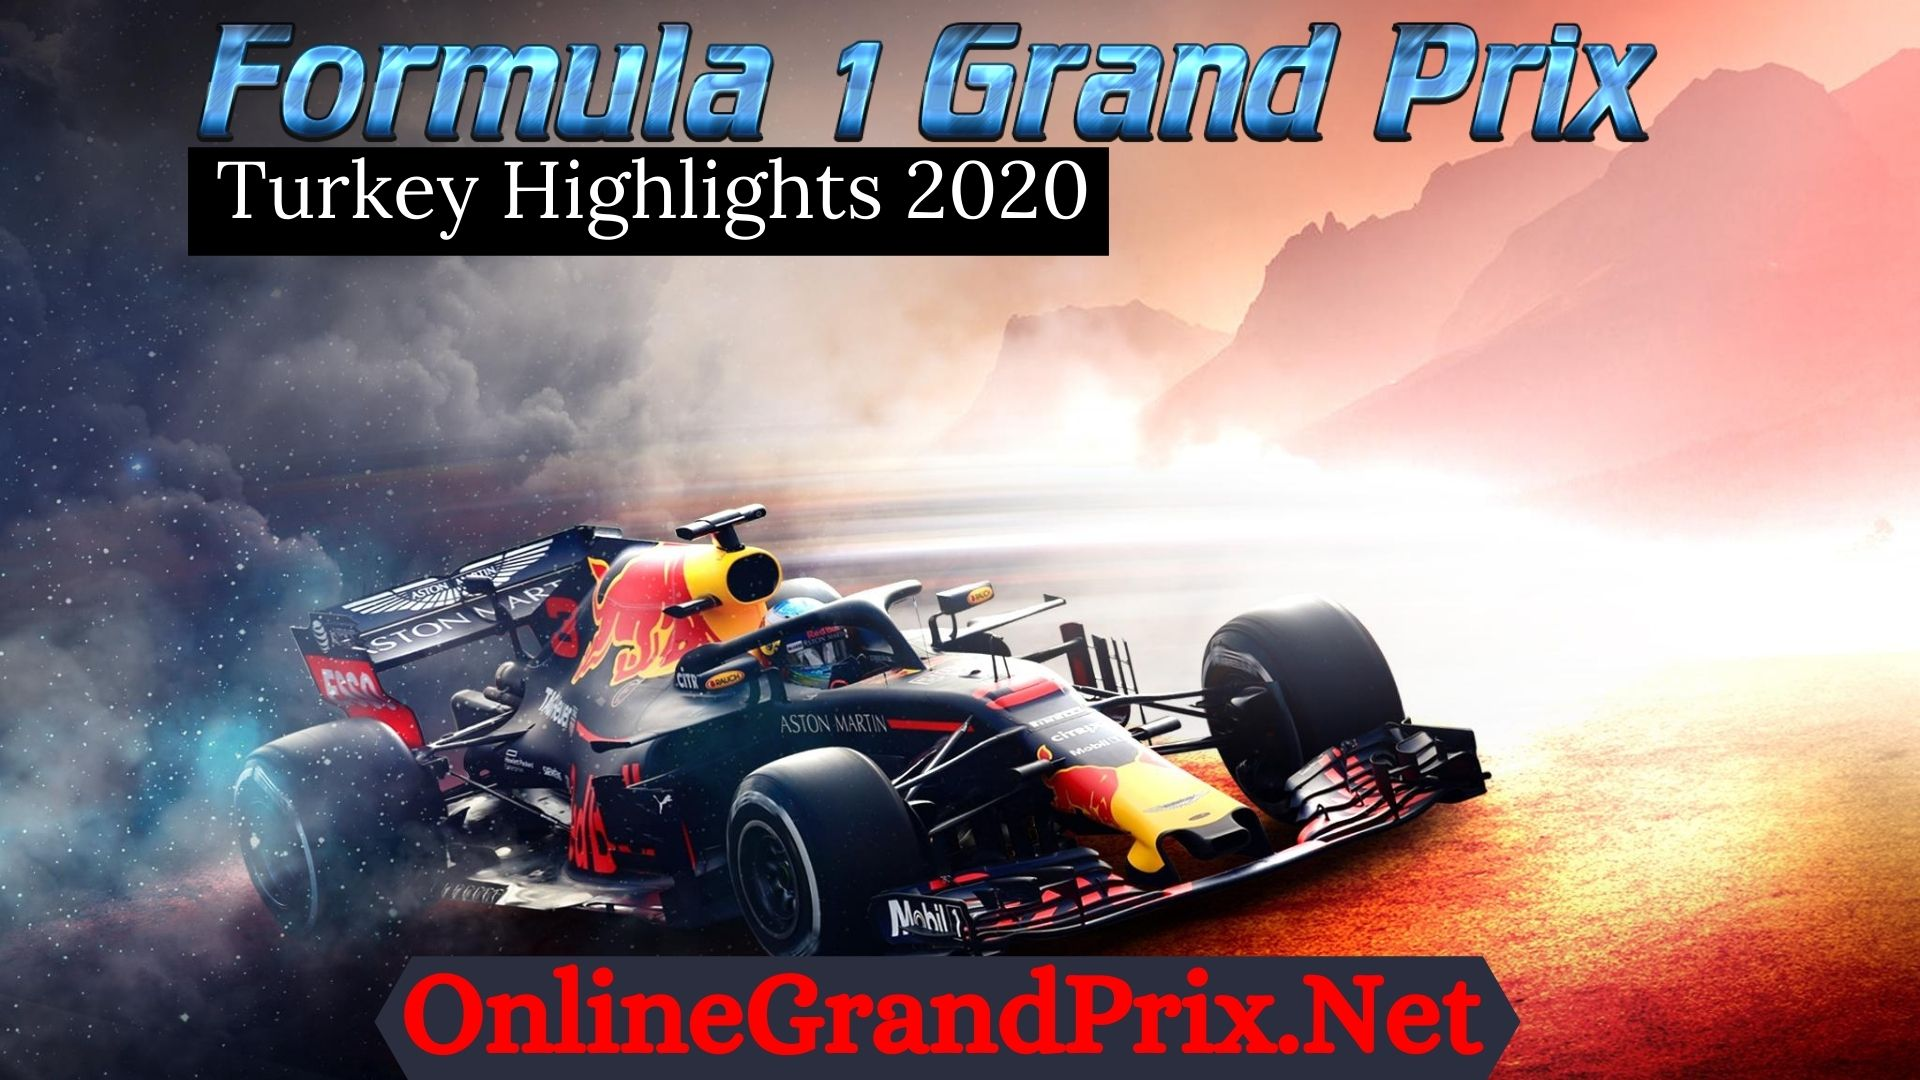 Turkey GP F1 Highlights 2020